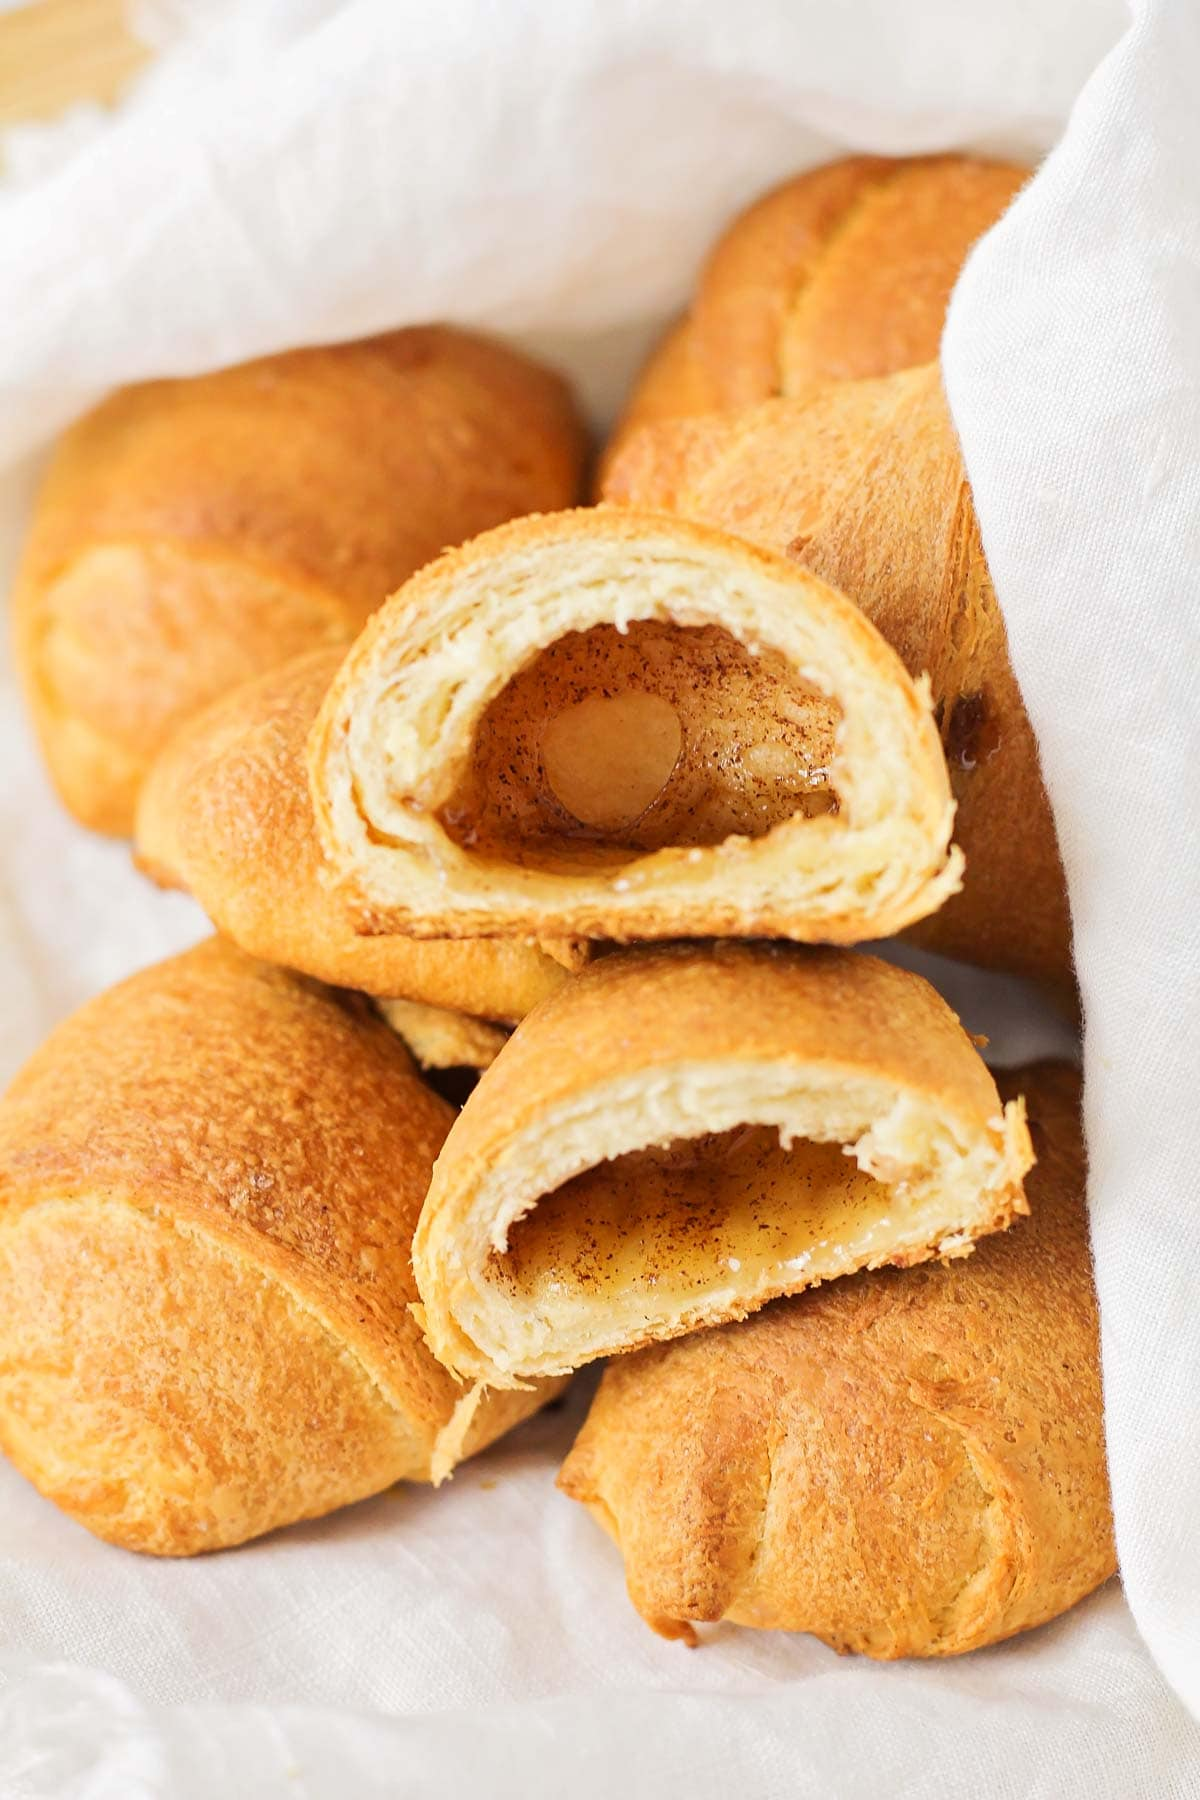 Resurrection rolls made from crescents